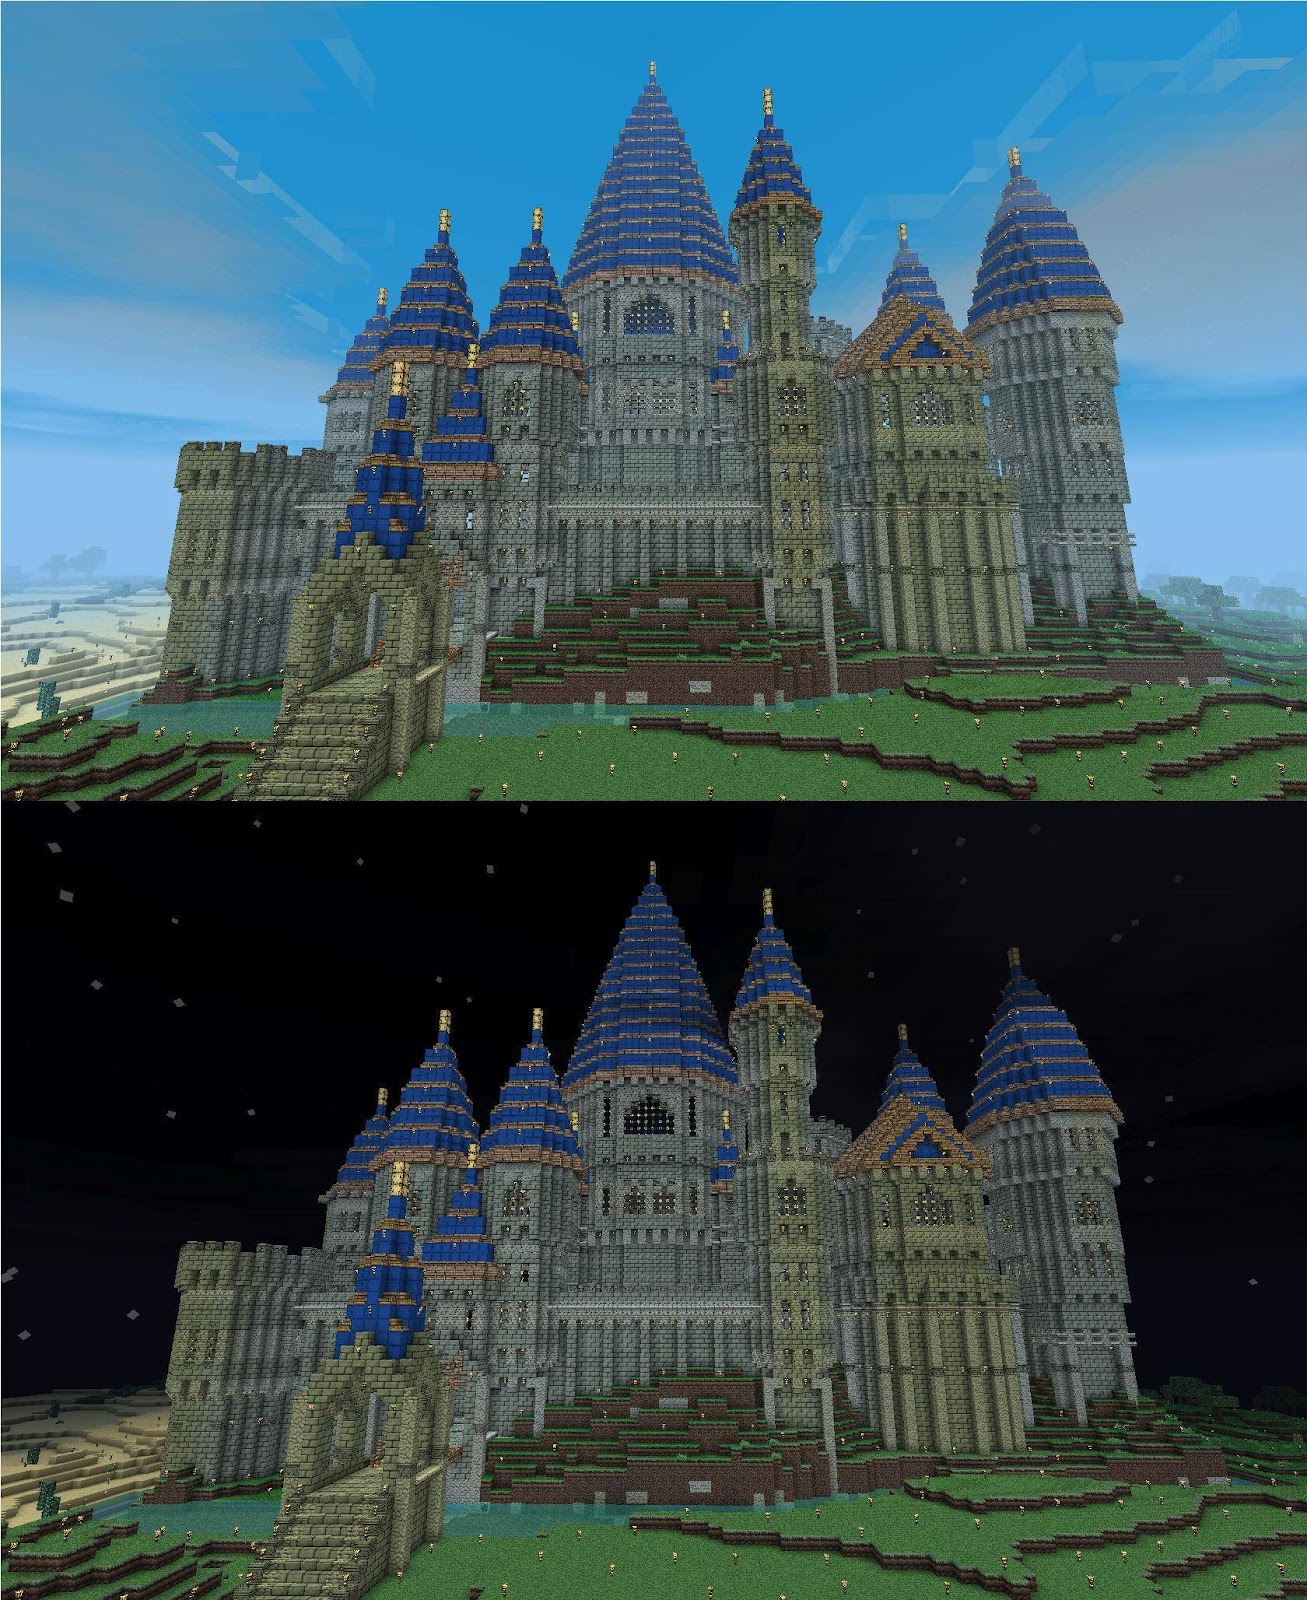 Enormous Colourful Minecraft Castle